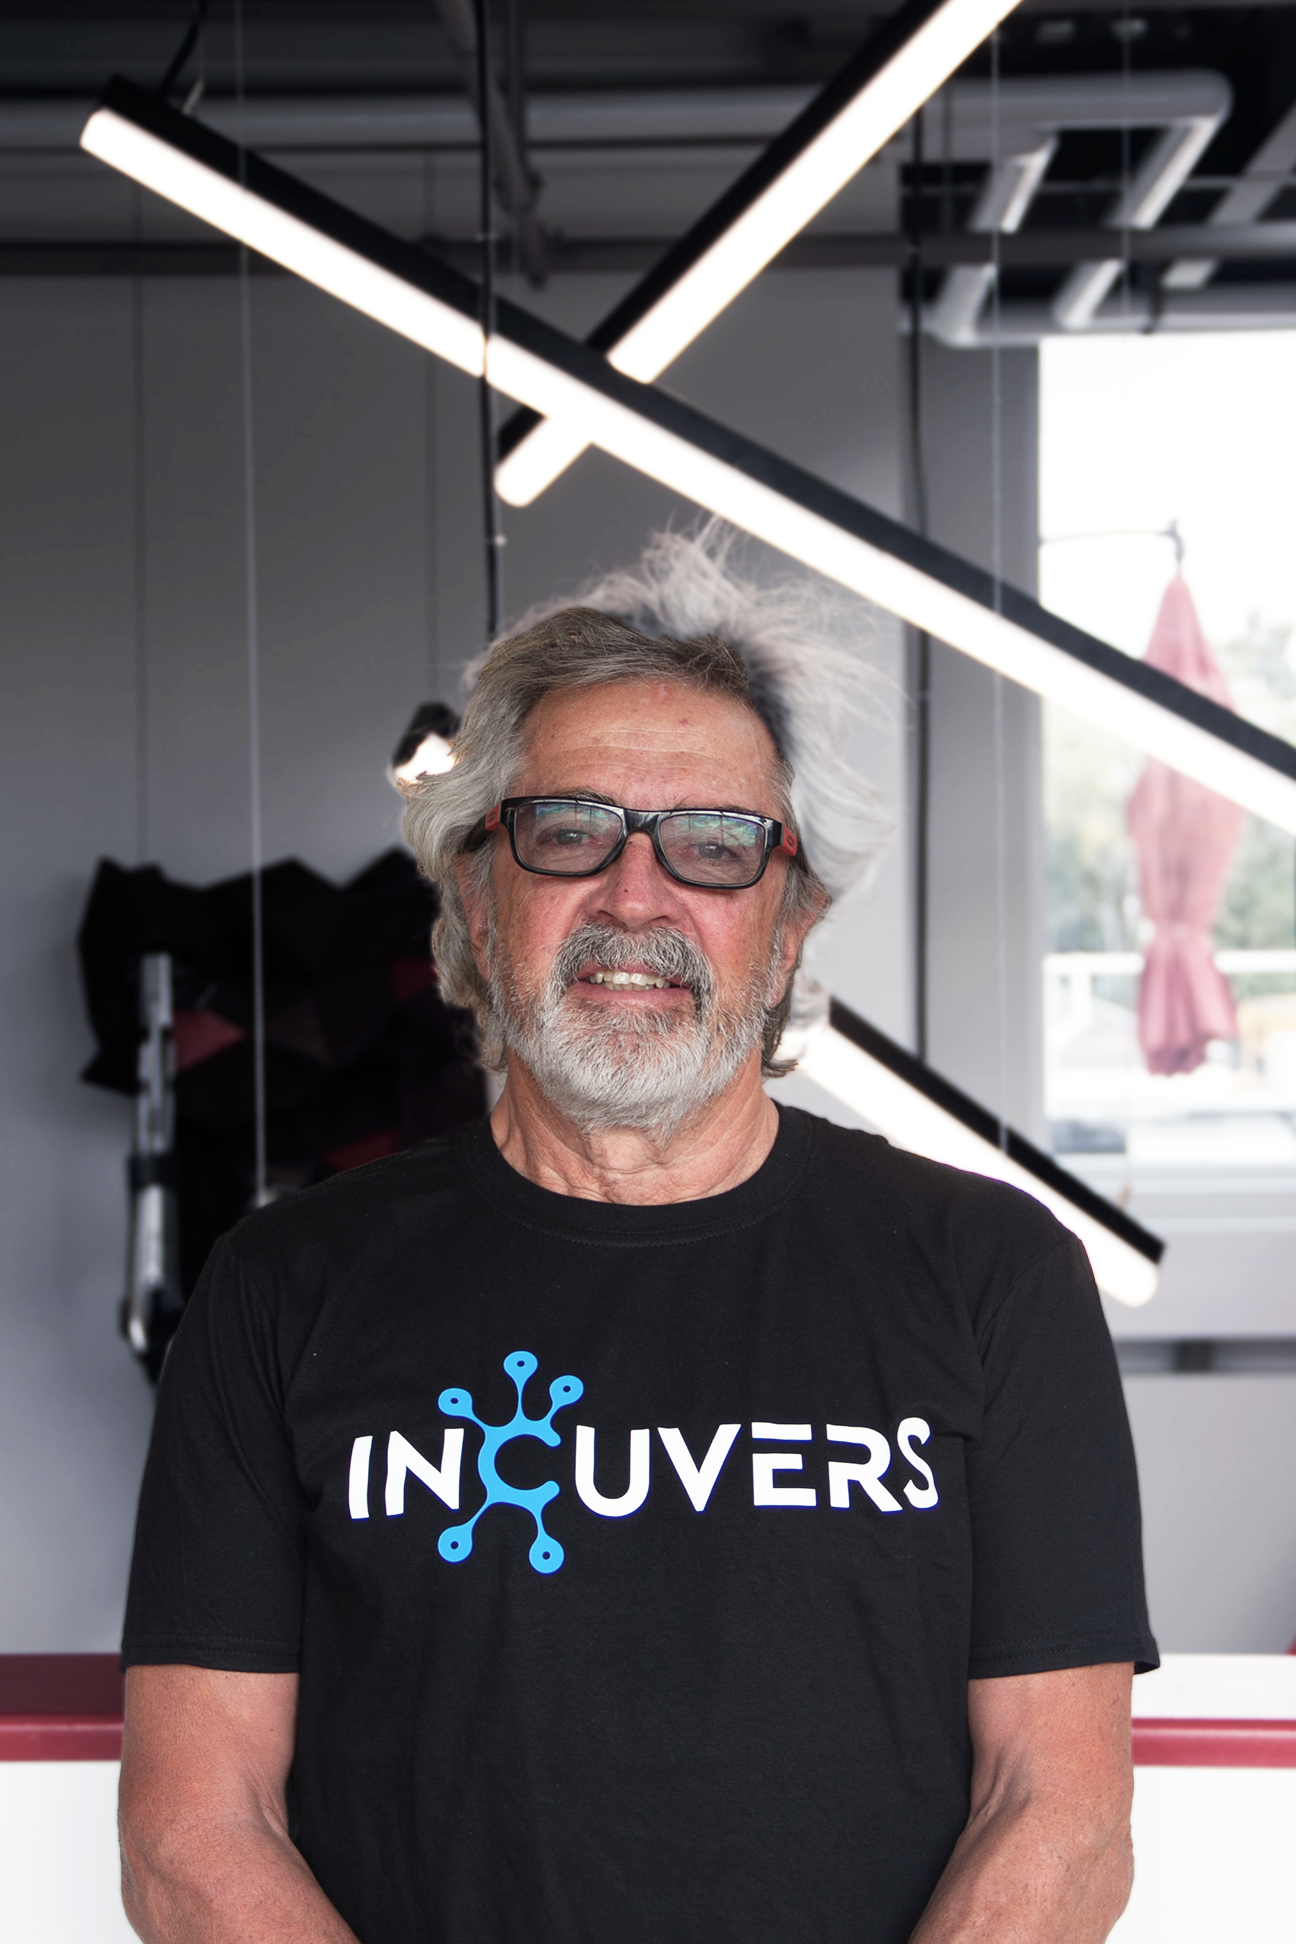 Incuvers Marketing Specialist Timber Shao